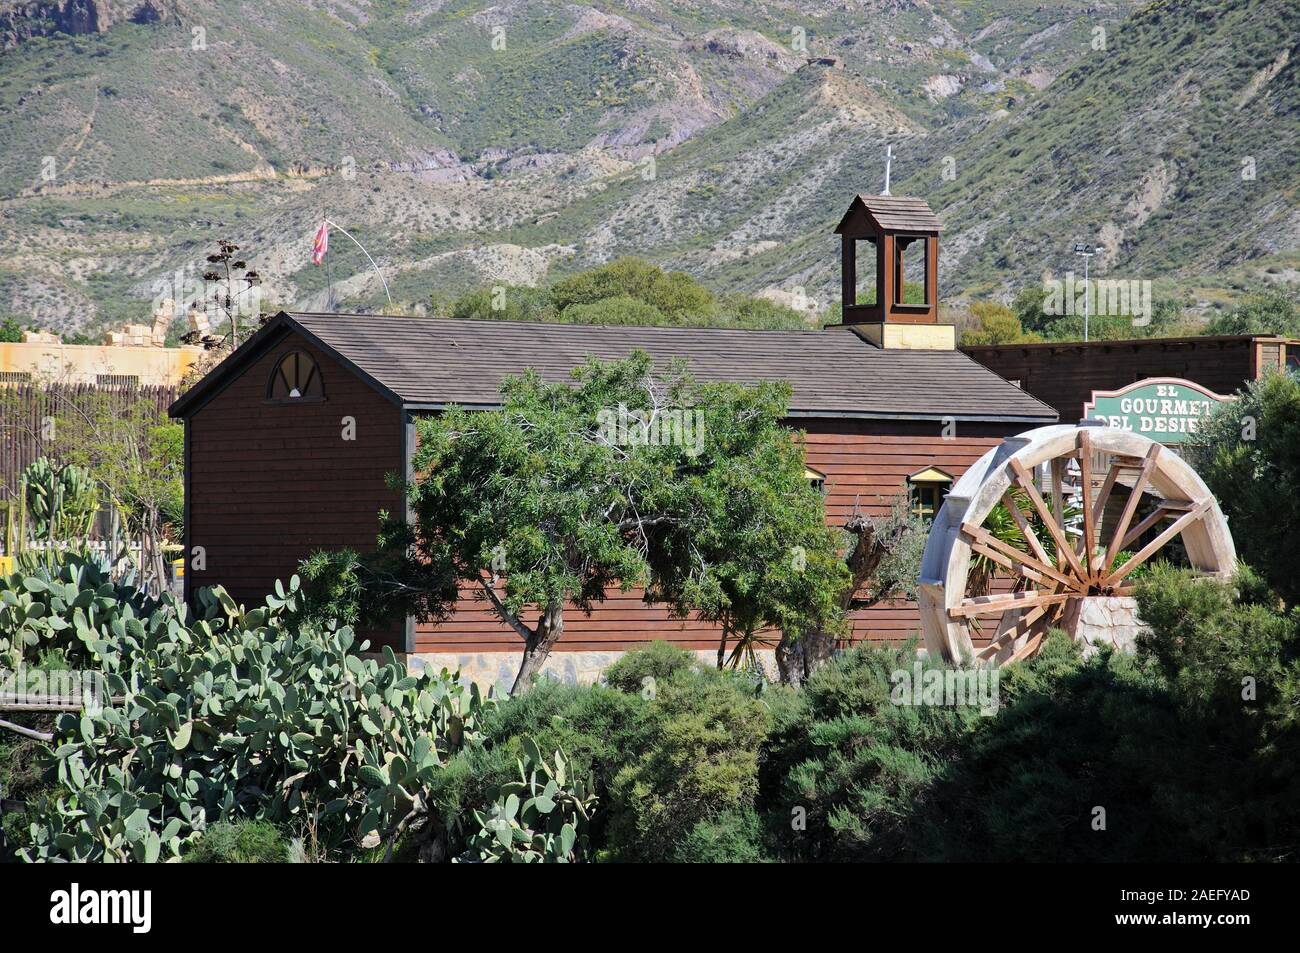 Wooden church building in Fort Apache at Mini Hollywood with mountains to the rear, Tabernas, Almeria Province, Andalucia, Spain. Stock Photo